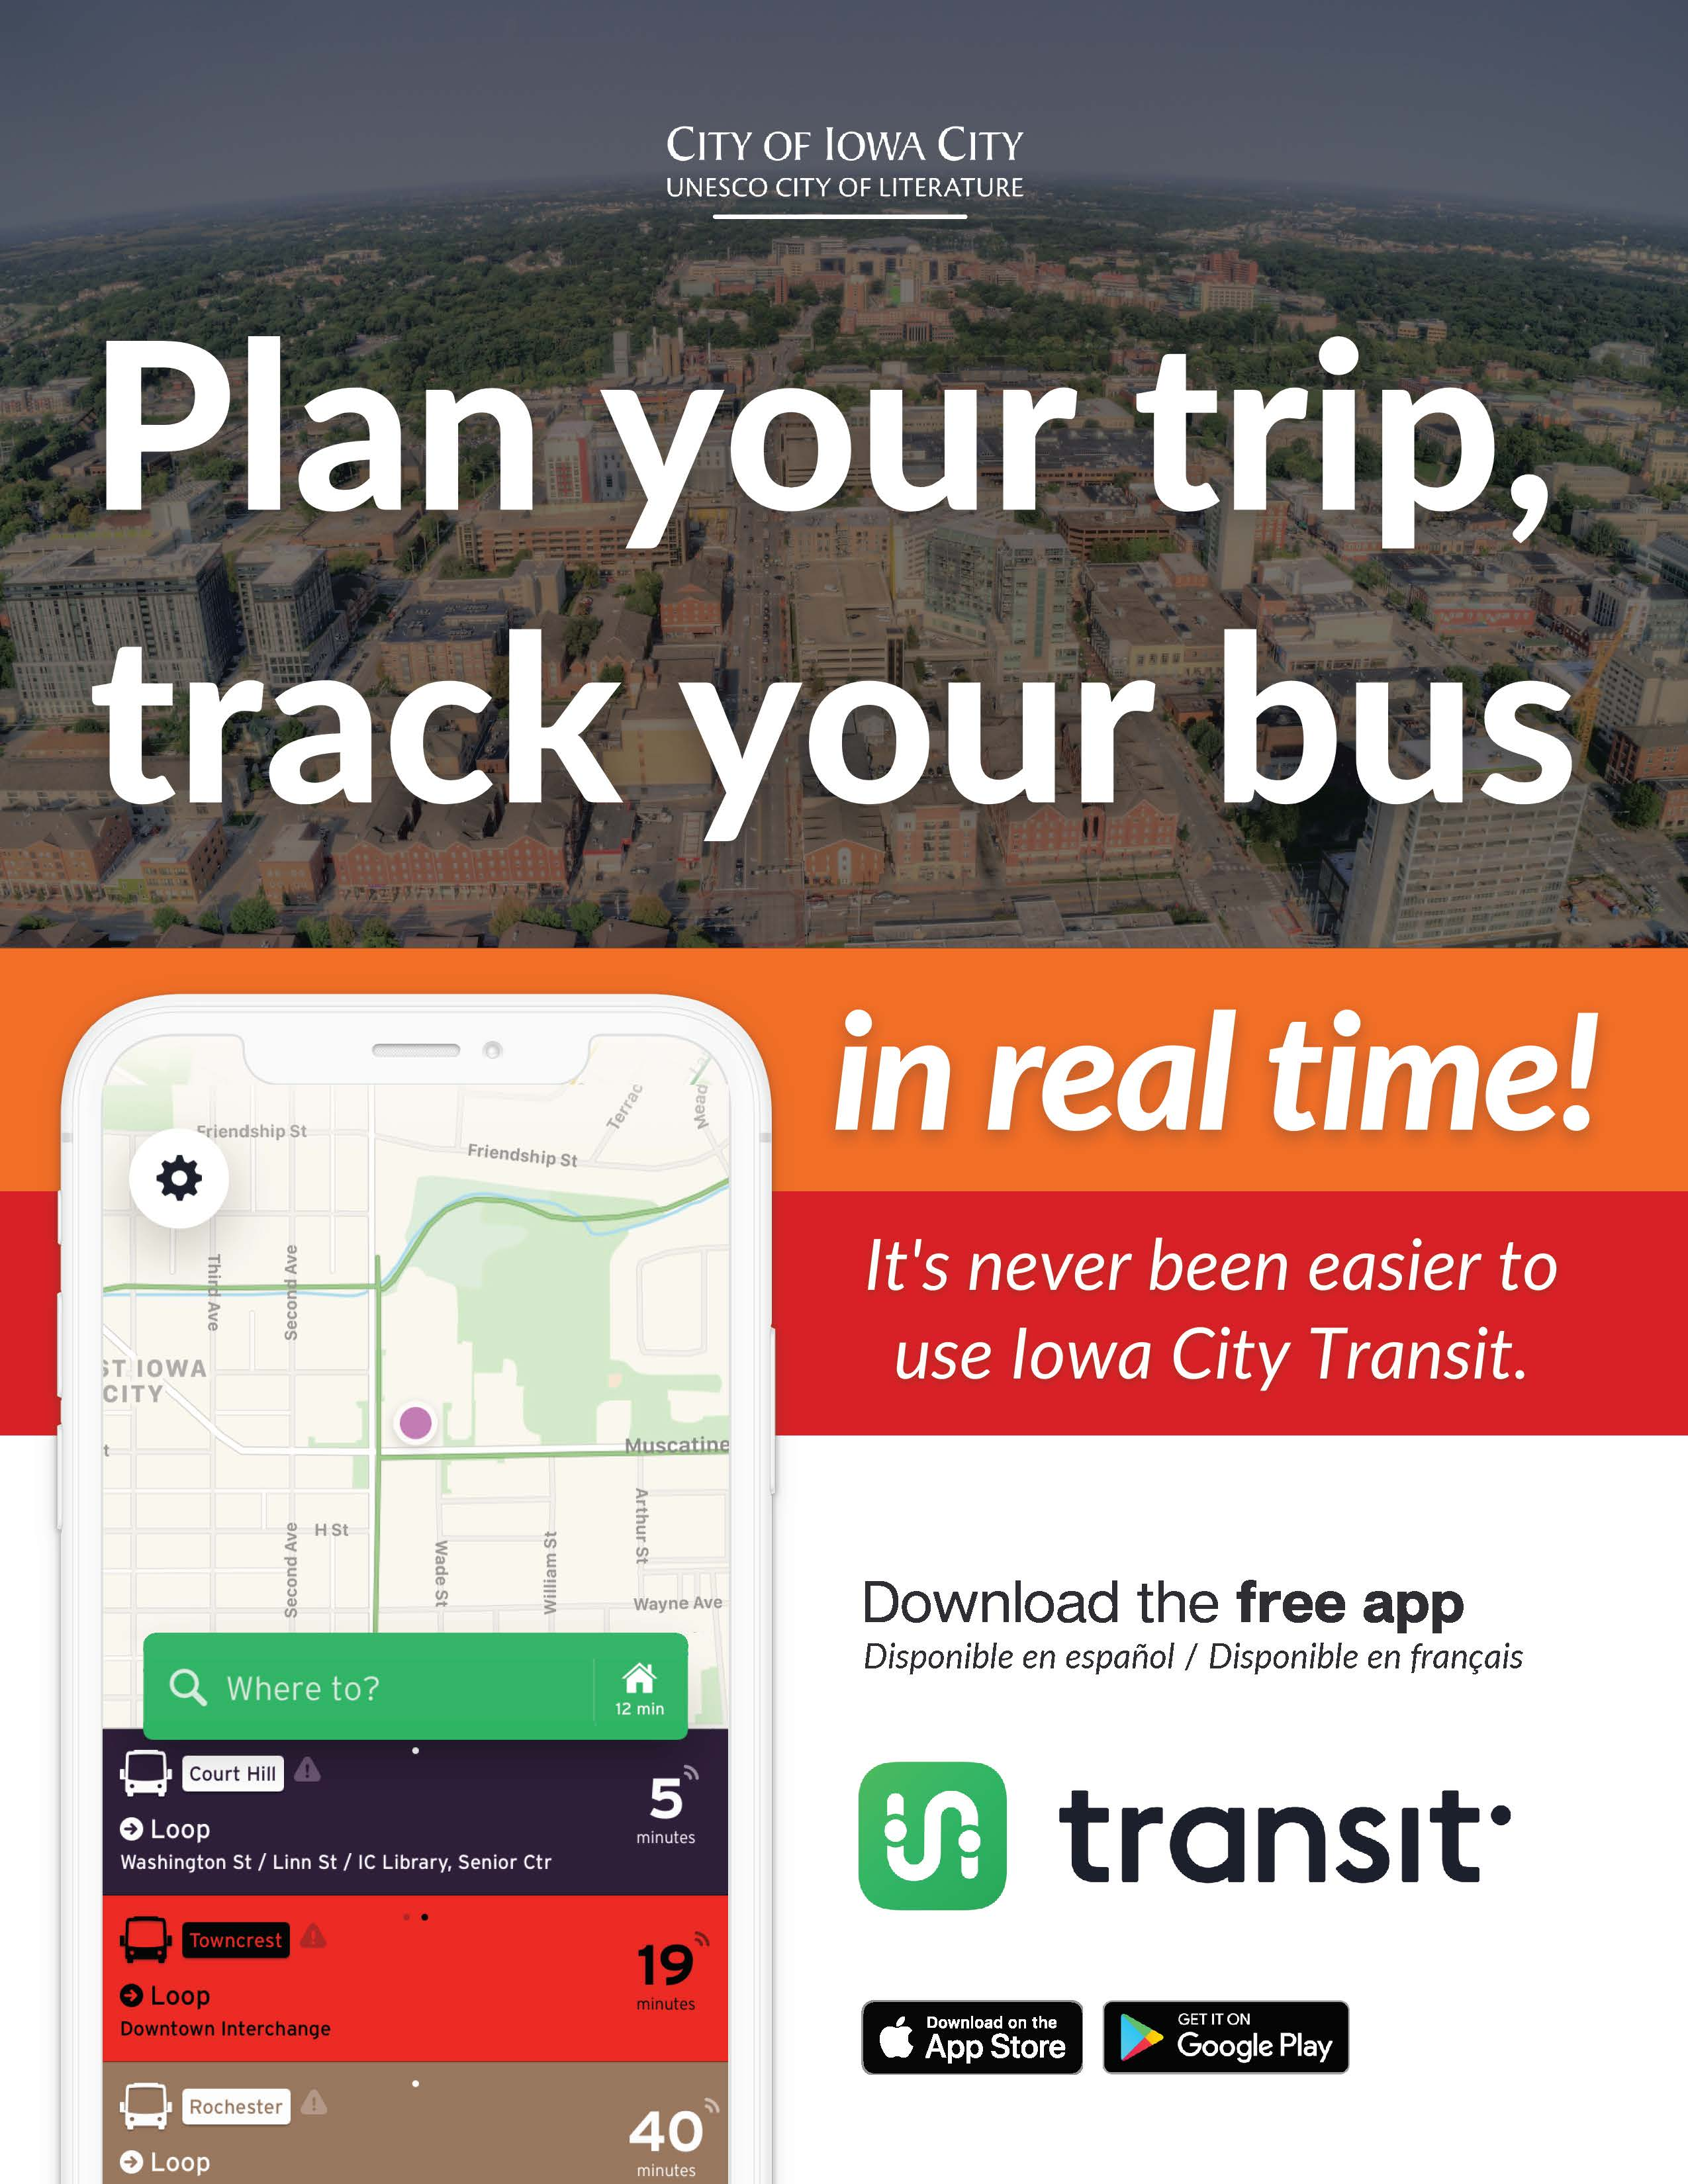 A flyer for the Transit App.